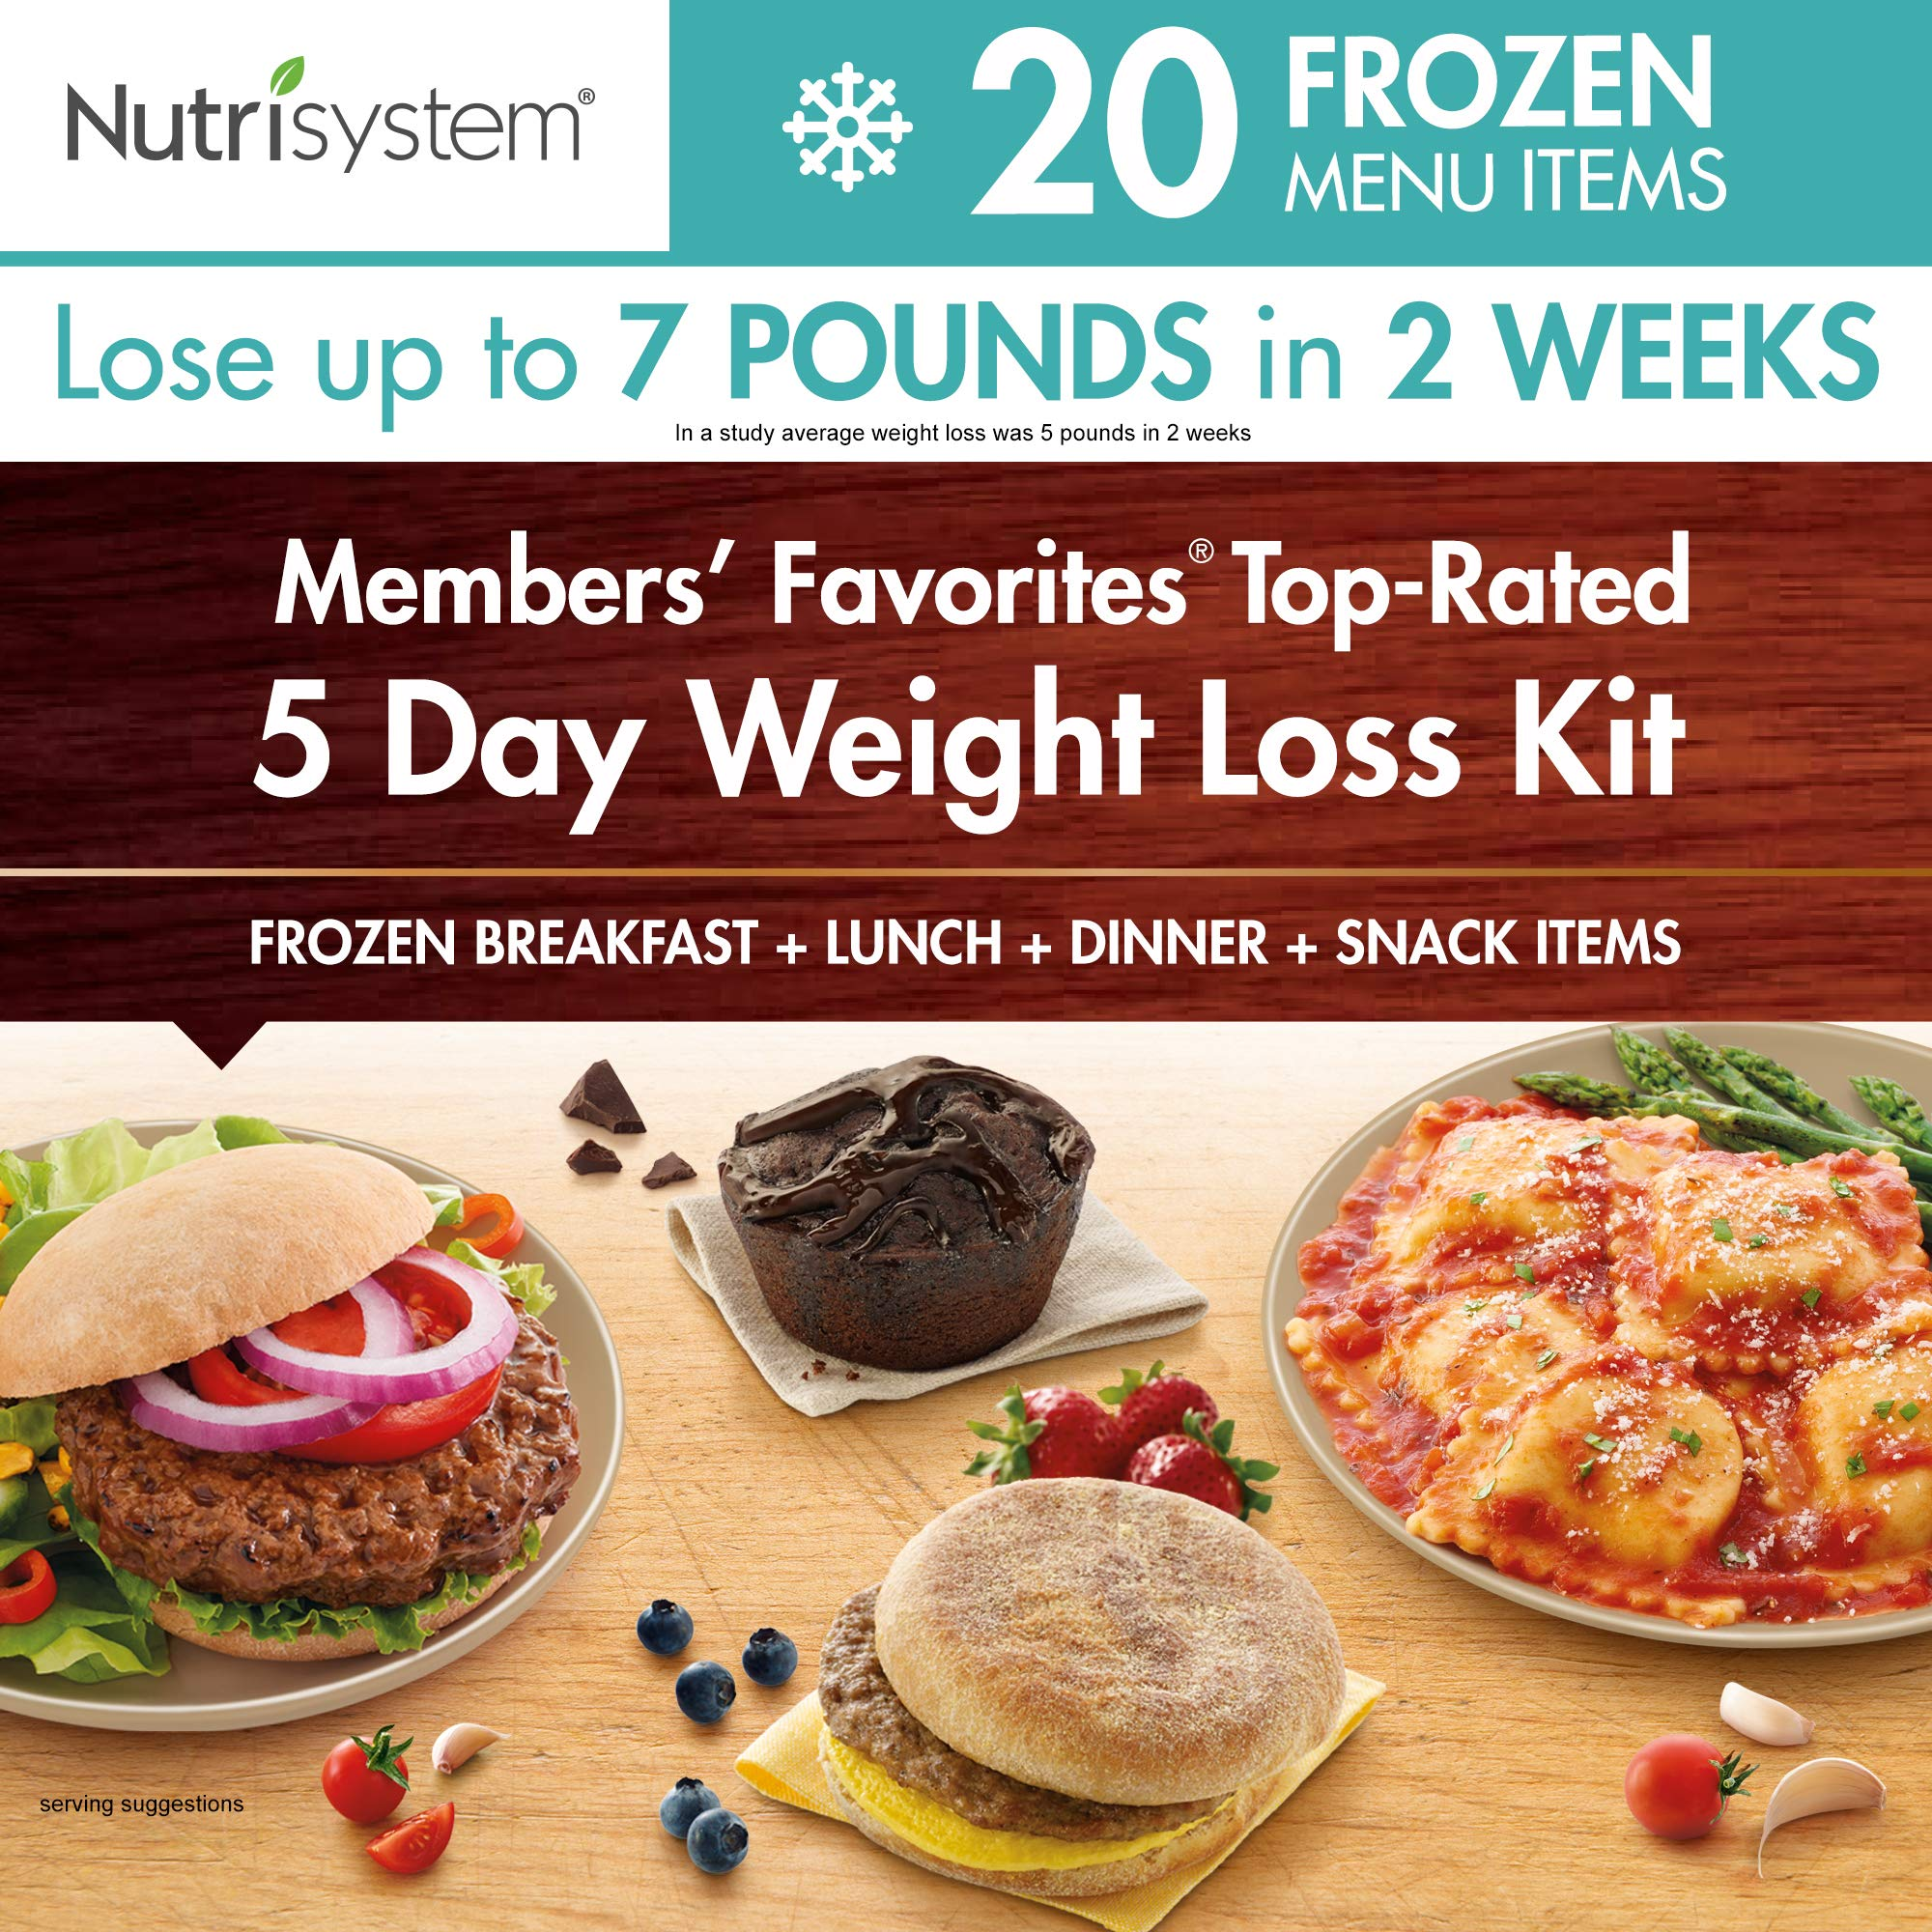 Nutrisystem® Members' Favorites®- TOP Rated, 5 Day Weight Loss Kit (Frozen) by Nutrisystem (Image #1)